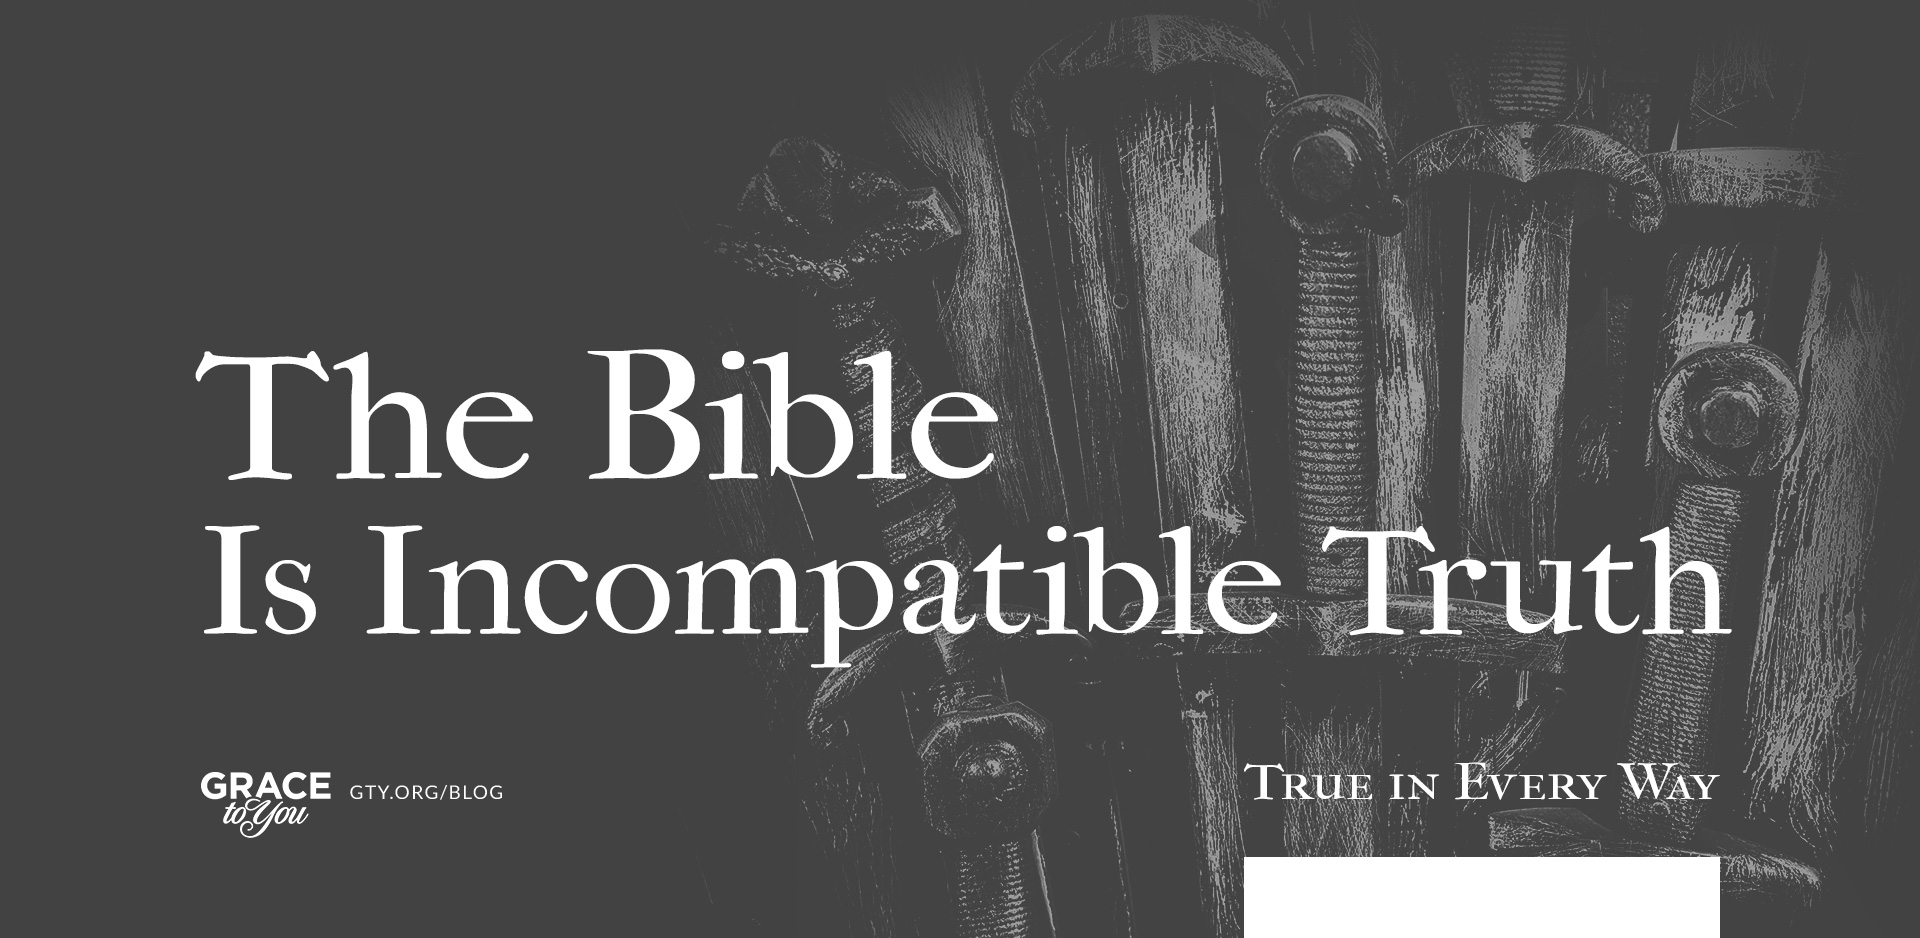 The Bible Is Incompatible Truth